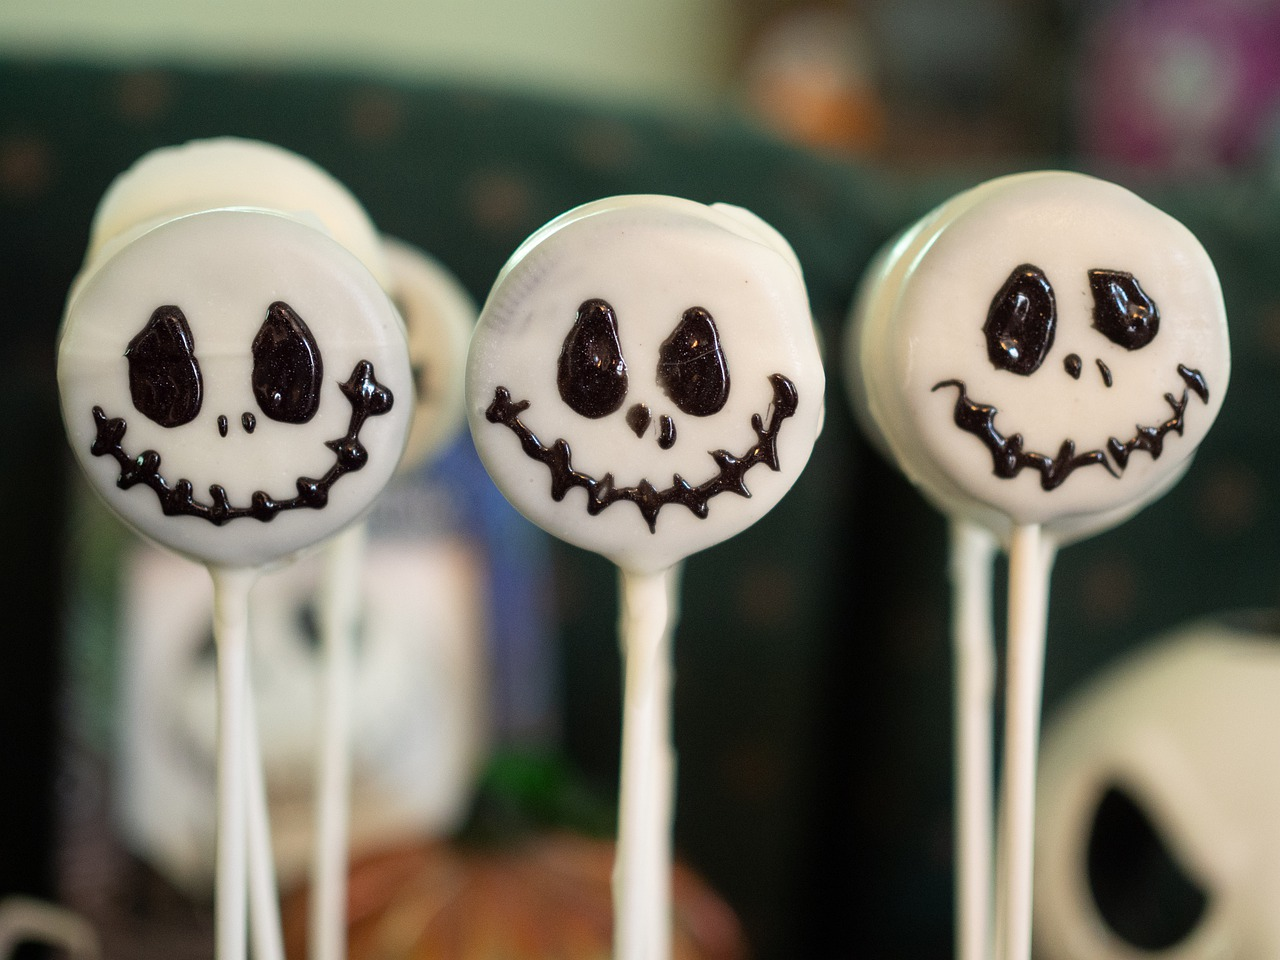 Don't feel like venturing away from home? Have a fun family evening by baking up some Halloween treats like these Halloween cake pops or a spooky spider or witch dessert. Or, go one step further and cook an entire meal around a spooky theme.